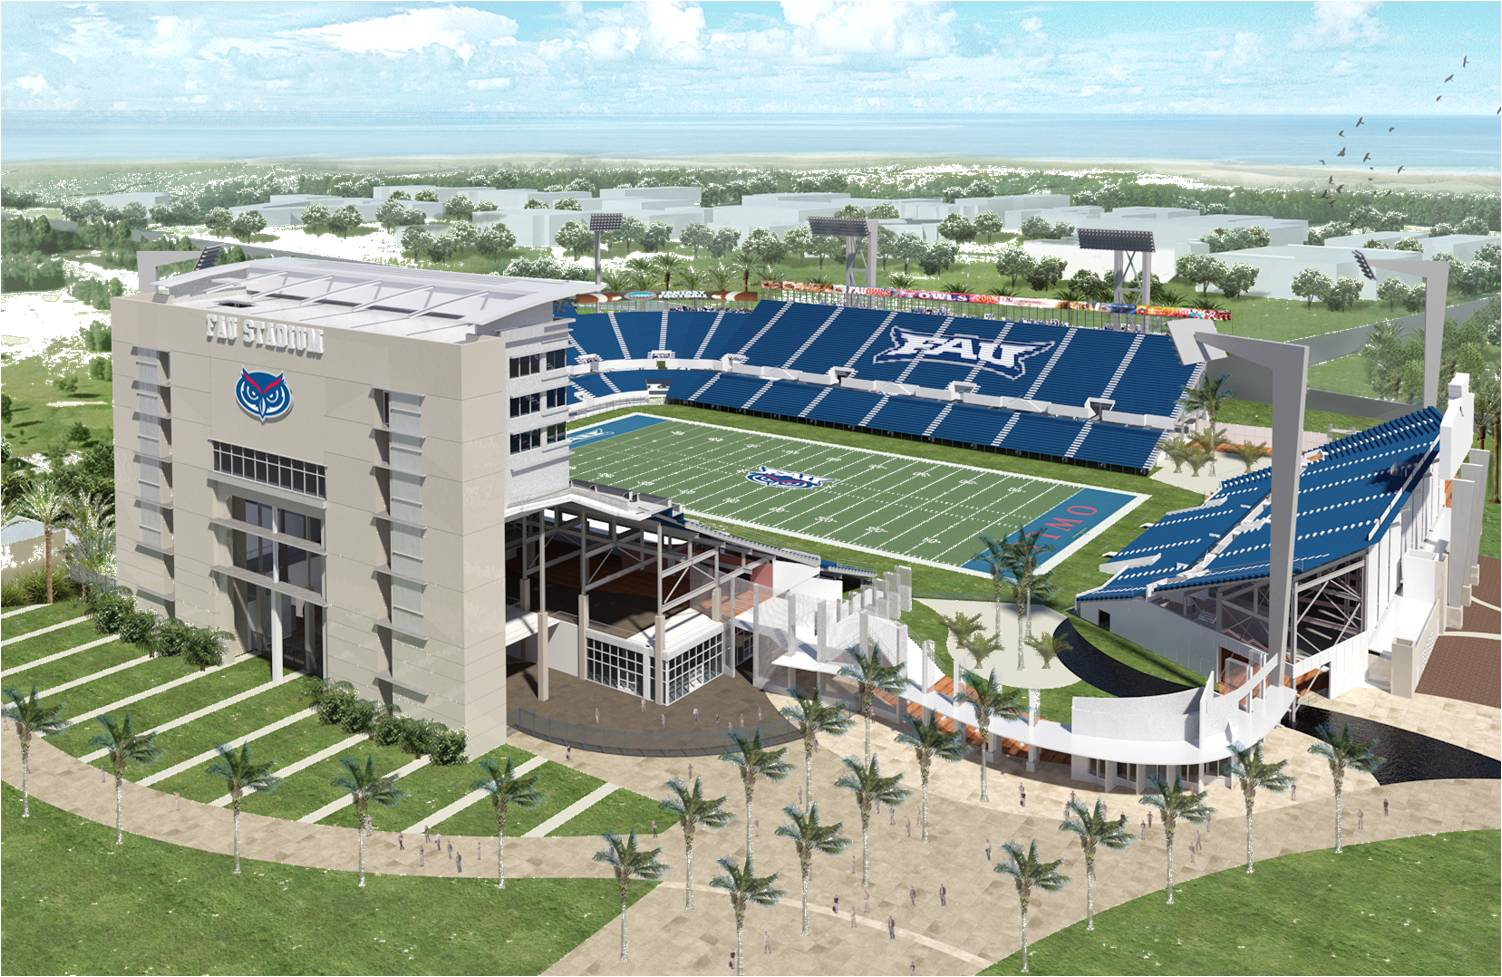 It's first and goal for new football stadium at Florida ...